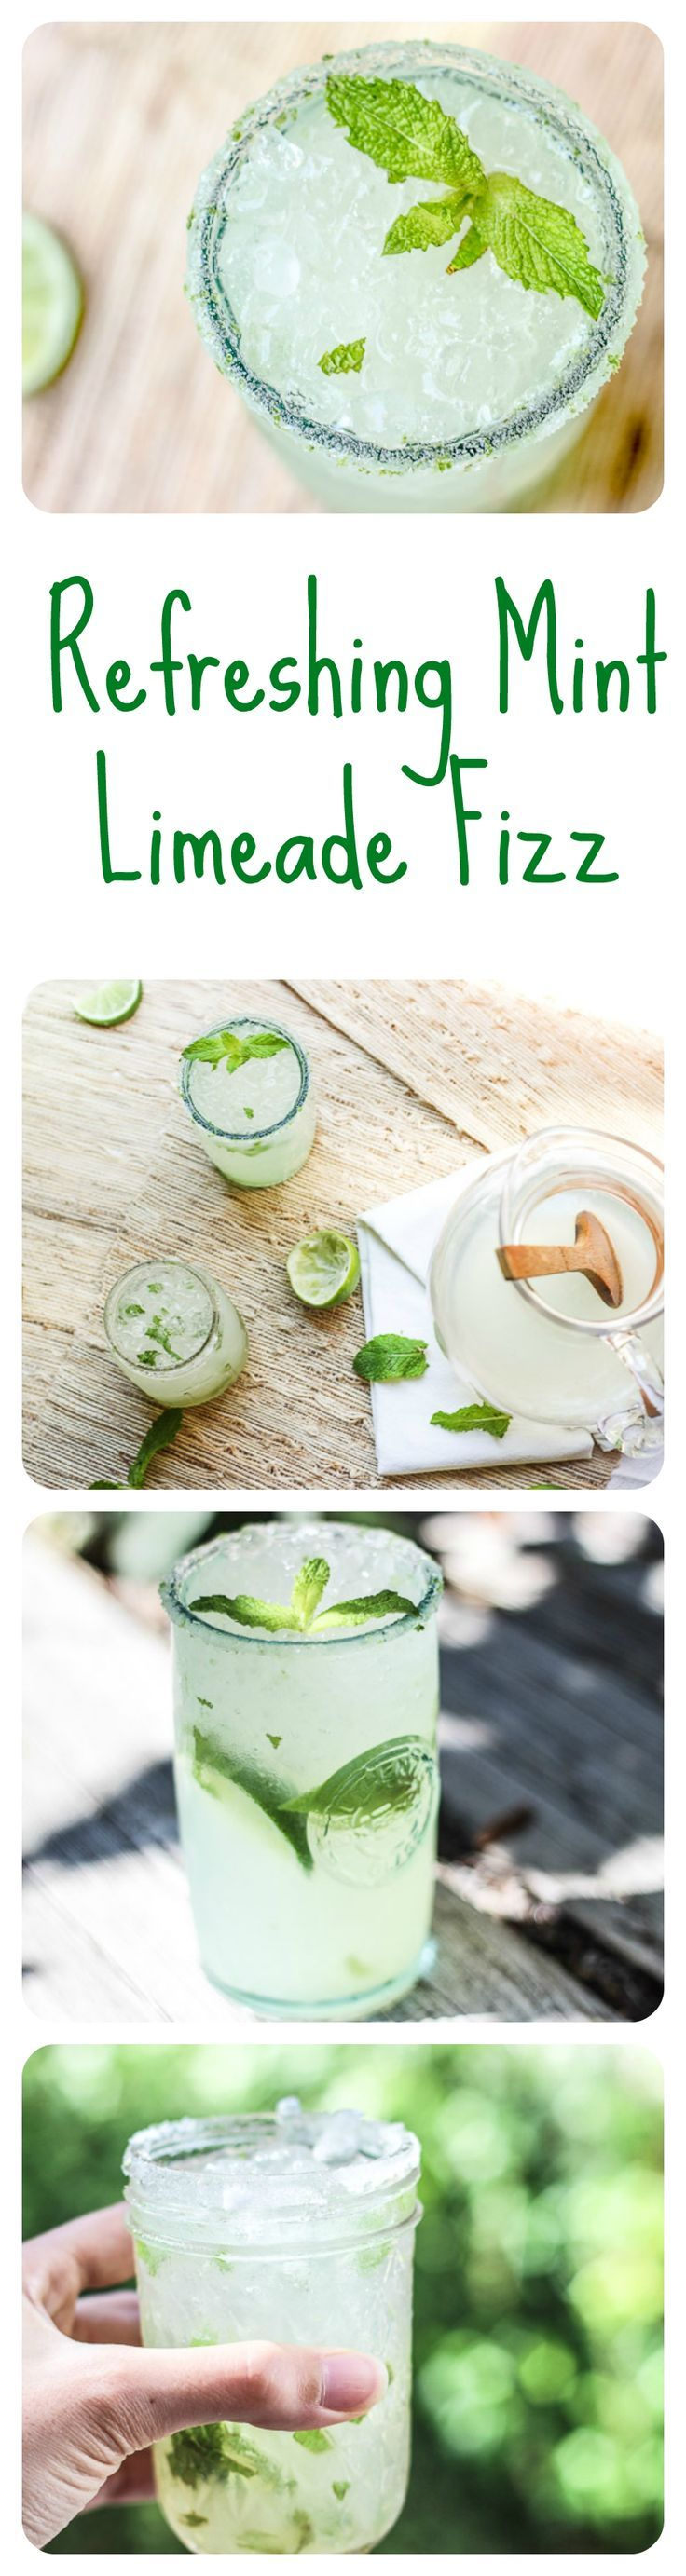 This delicious mint limeade fizz is refreshing, citrusy, bubbly, and most definitely the drink of the summer!